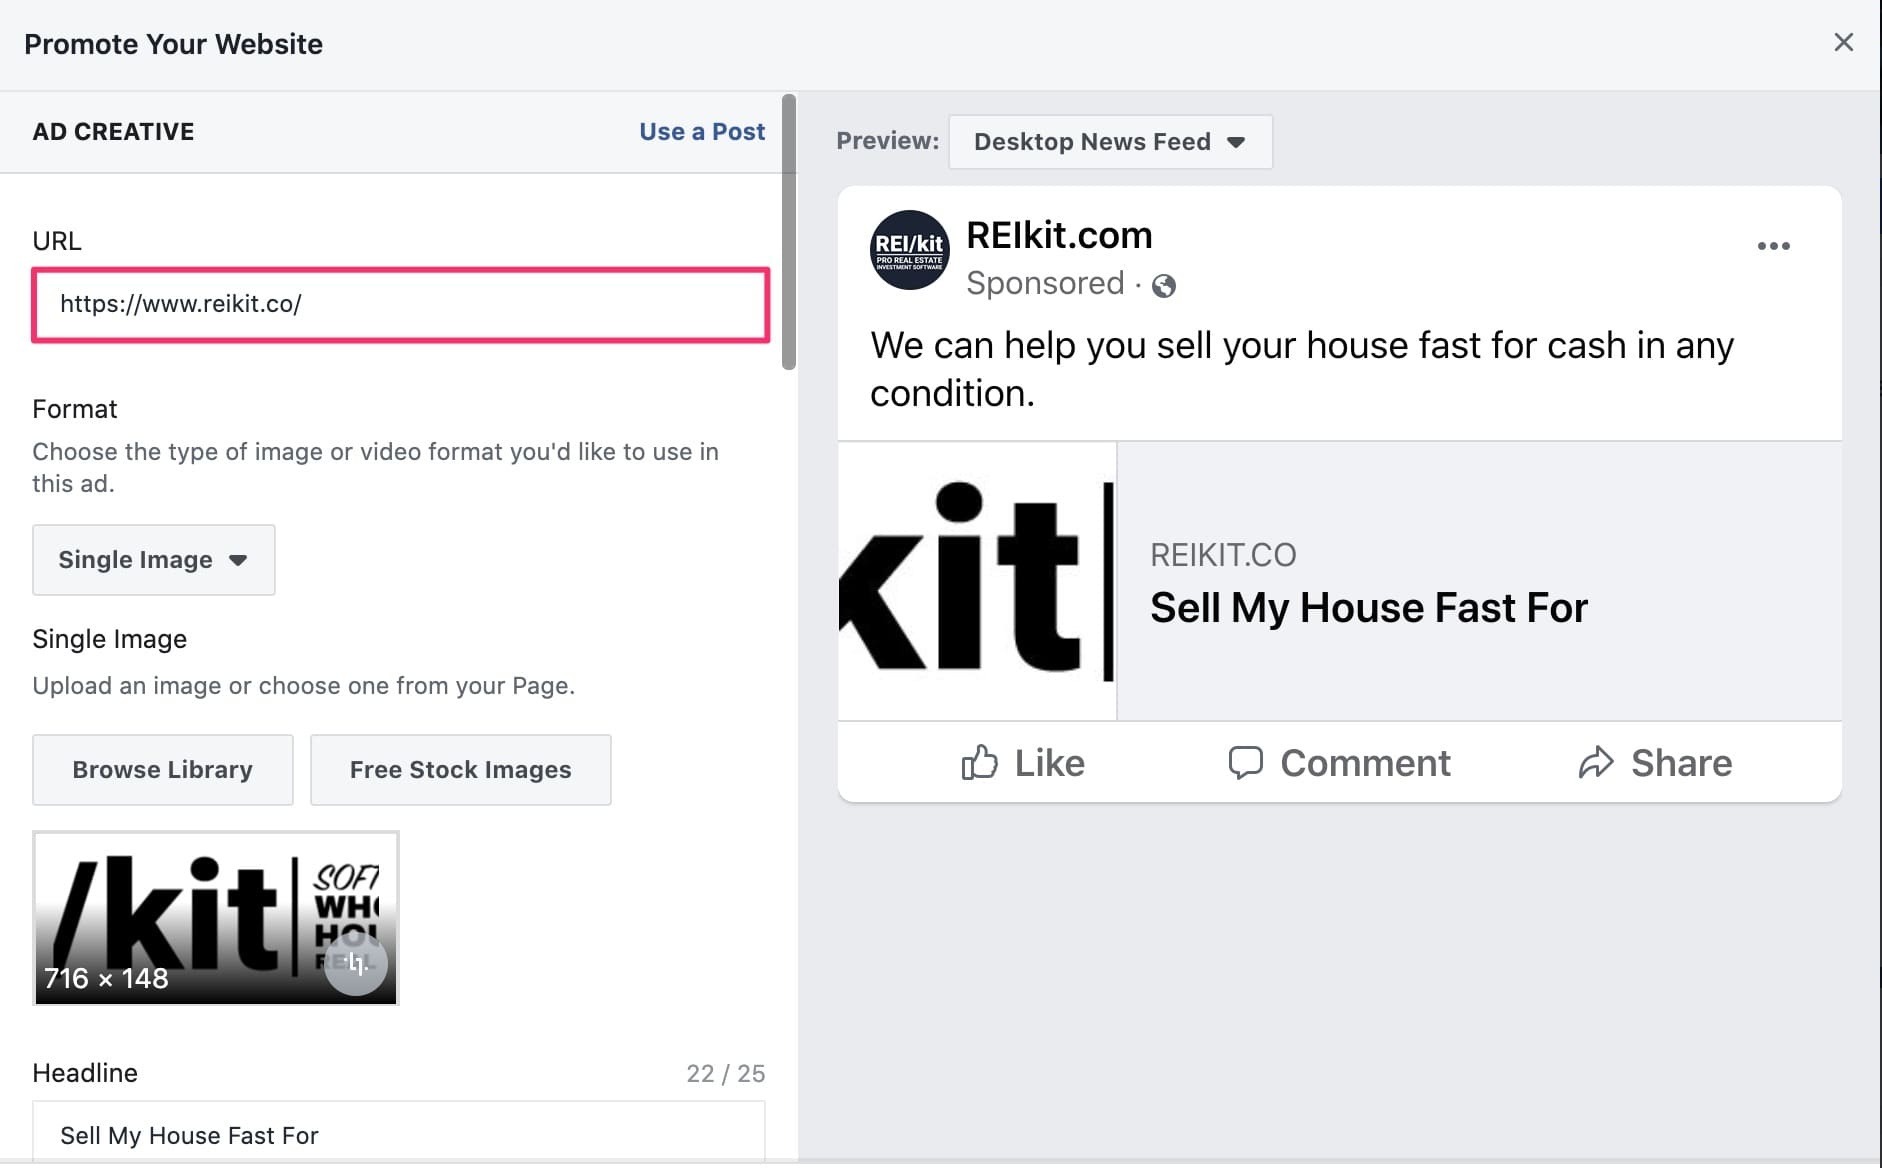 View of Facebook ad interface after destination url